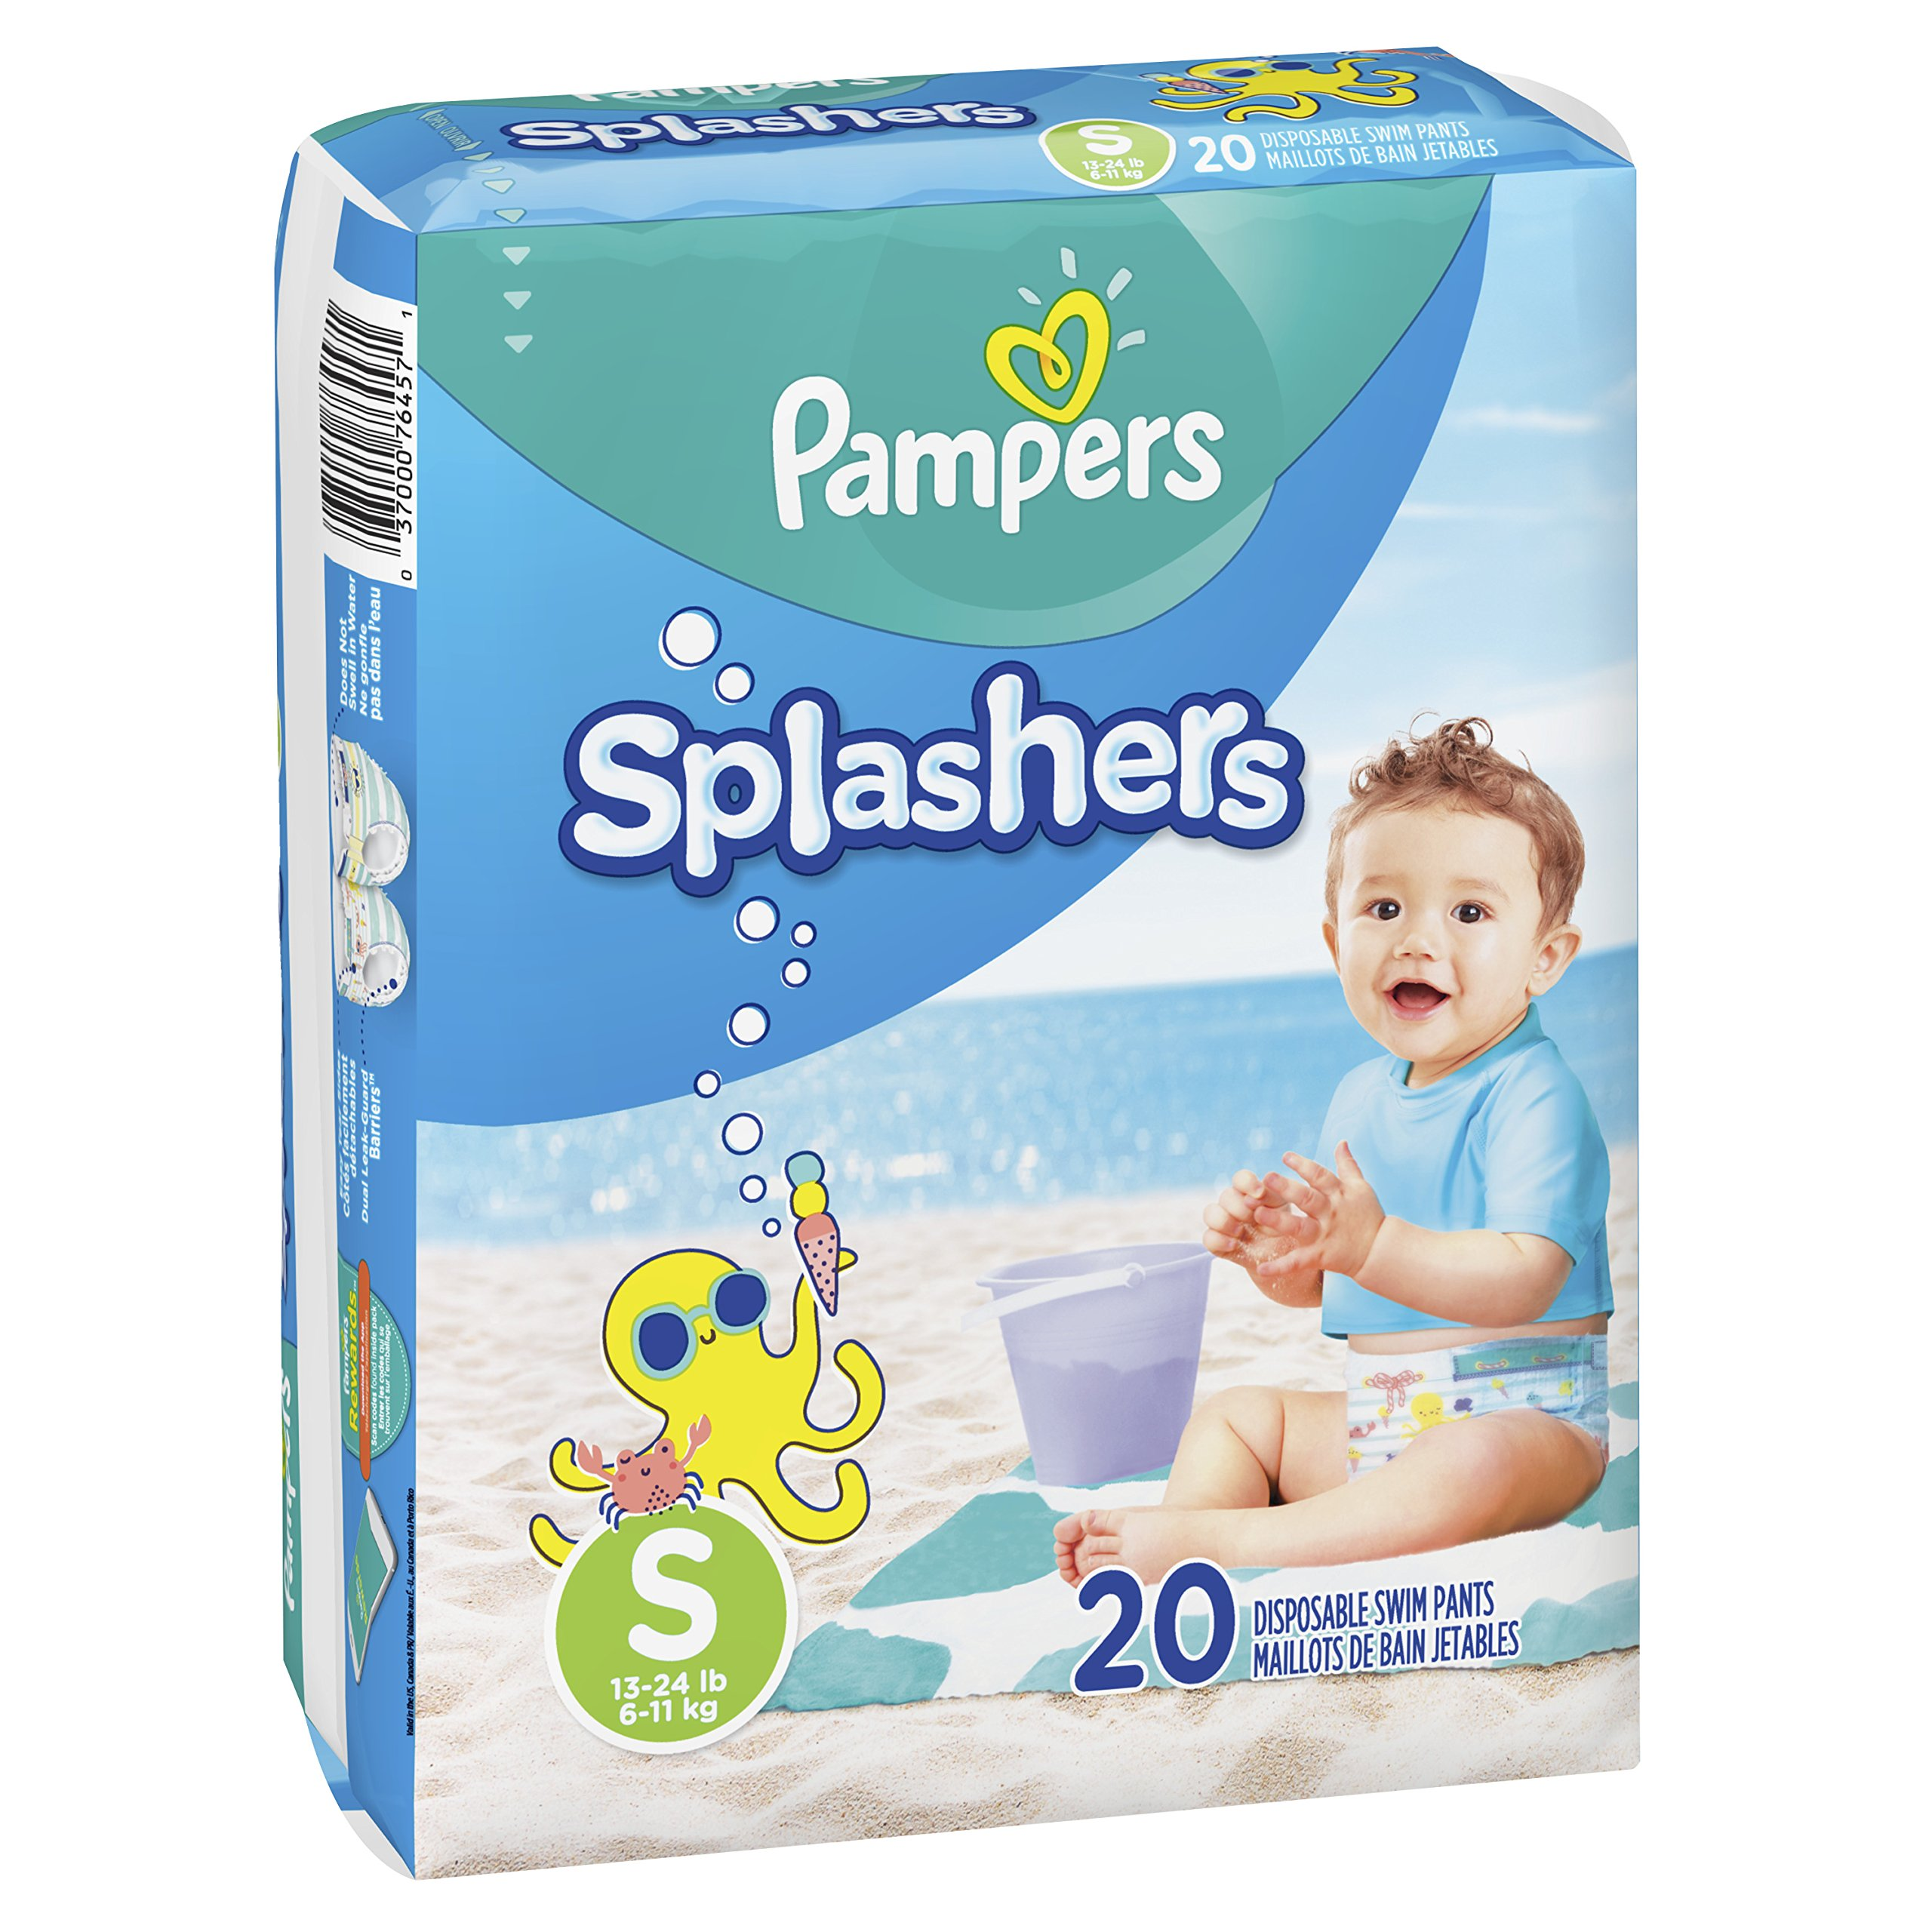 Swim Diapers Size 3 (13-24 lb) – Pampers Splashers Disposable Swim Pants, Small, Pack of 2 (Twinpack), 20 Count